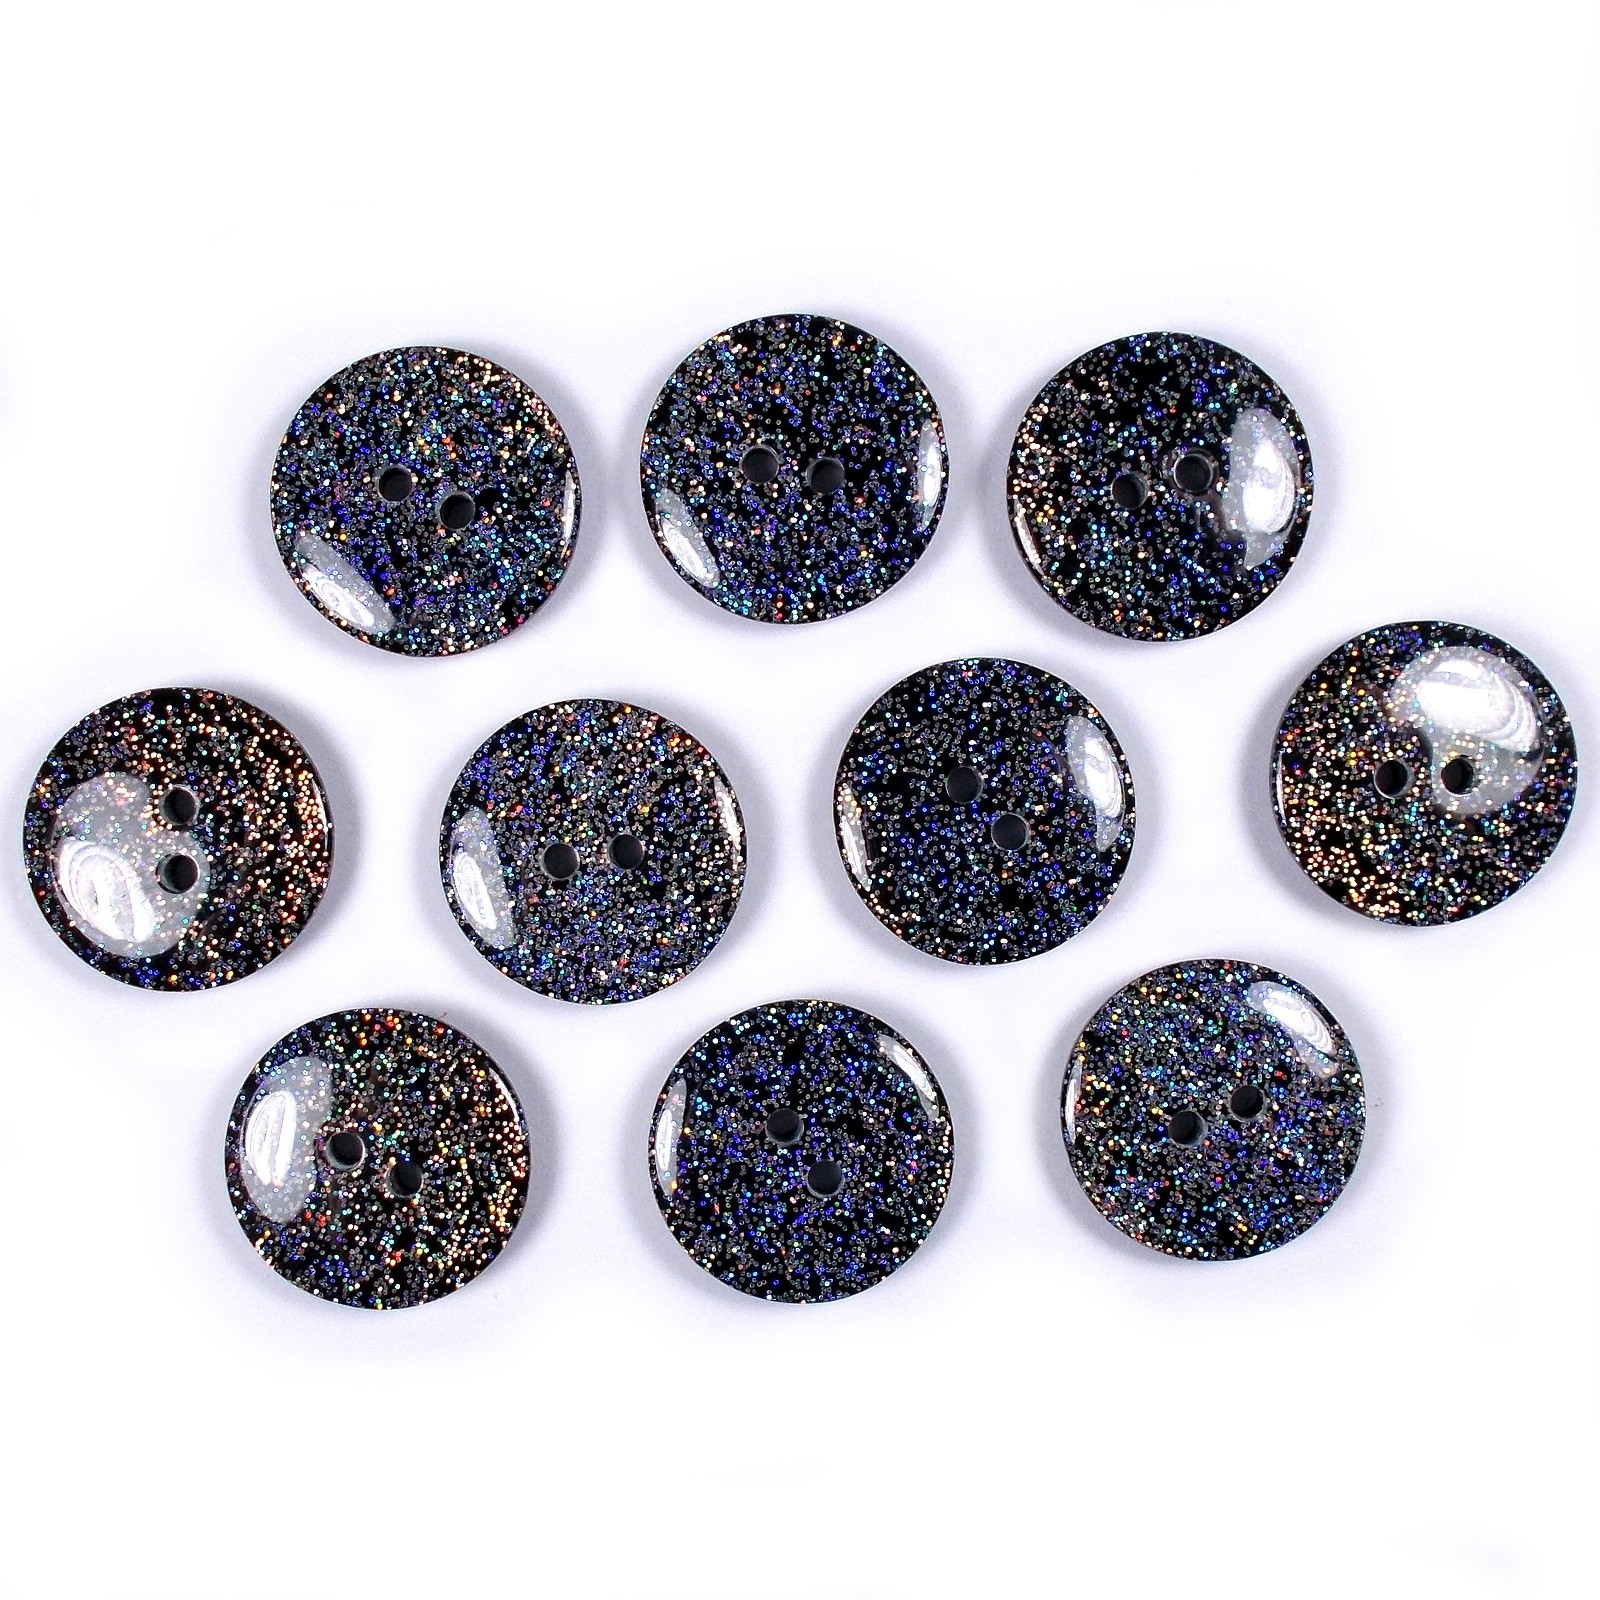 Iridescent Glitter Round 2 Hole Buttons 22mm Black Pack of 10